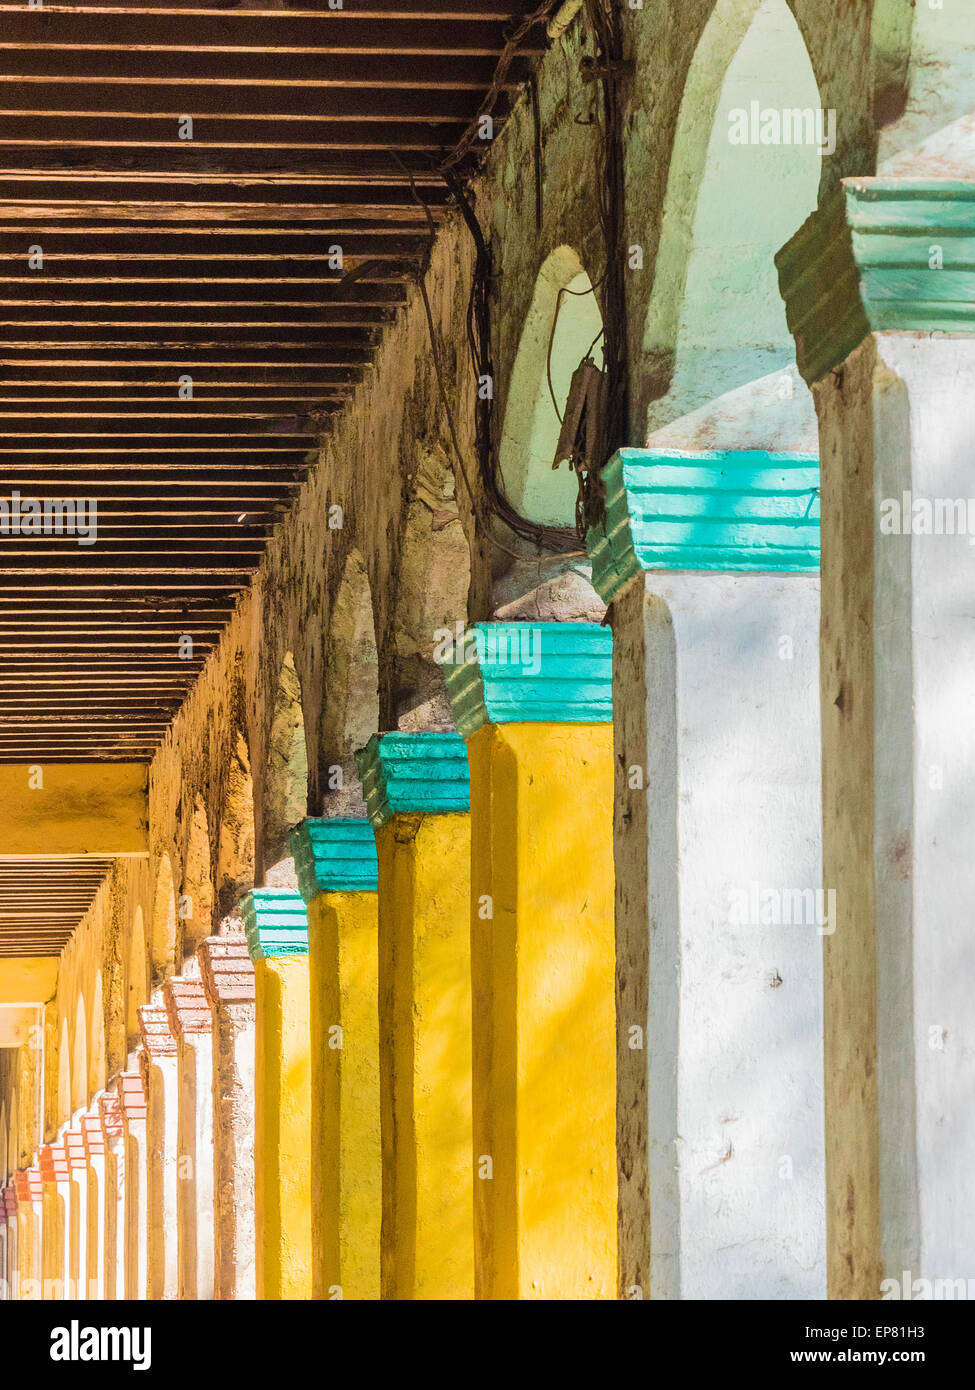 Repeated pattern of colorful capstones on columns in Havana Vieja, Cuba. - Stock Image